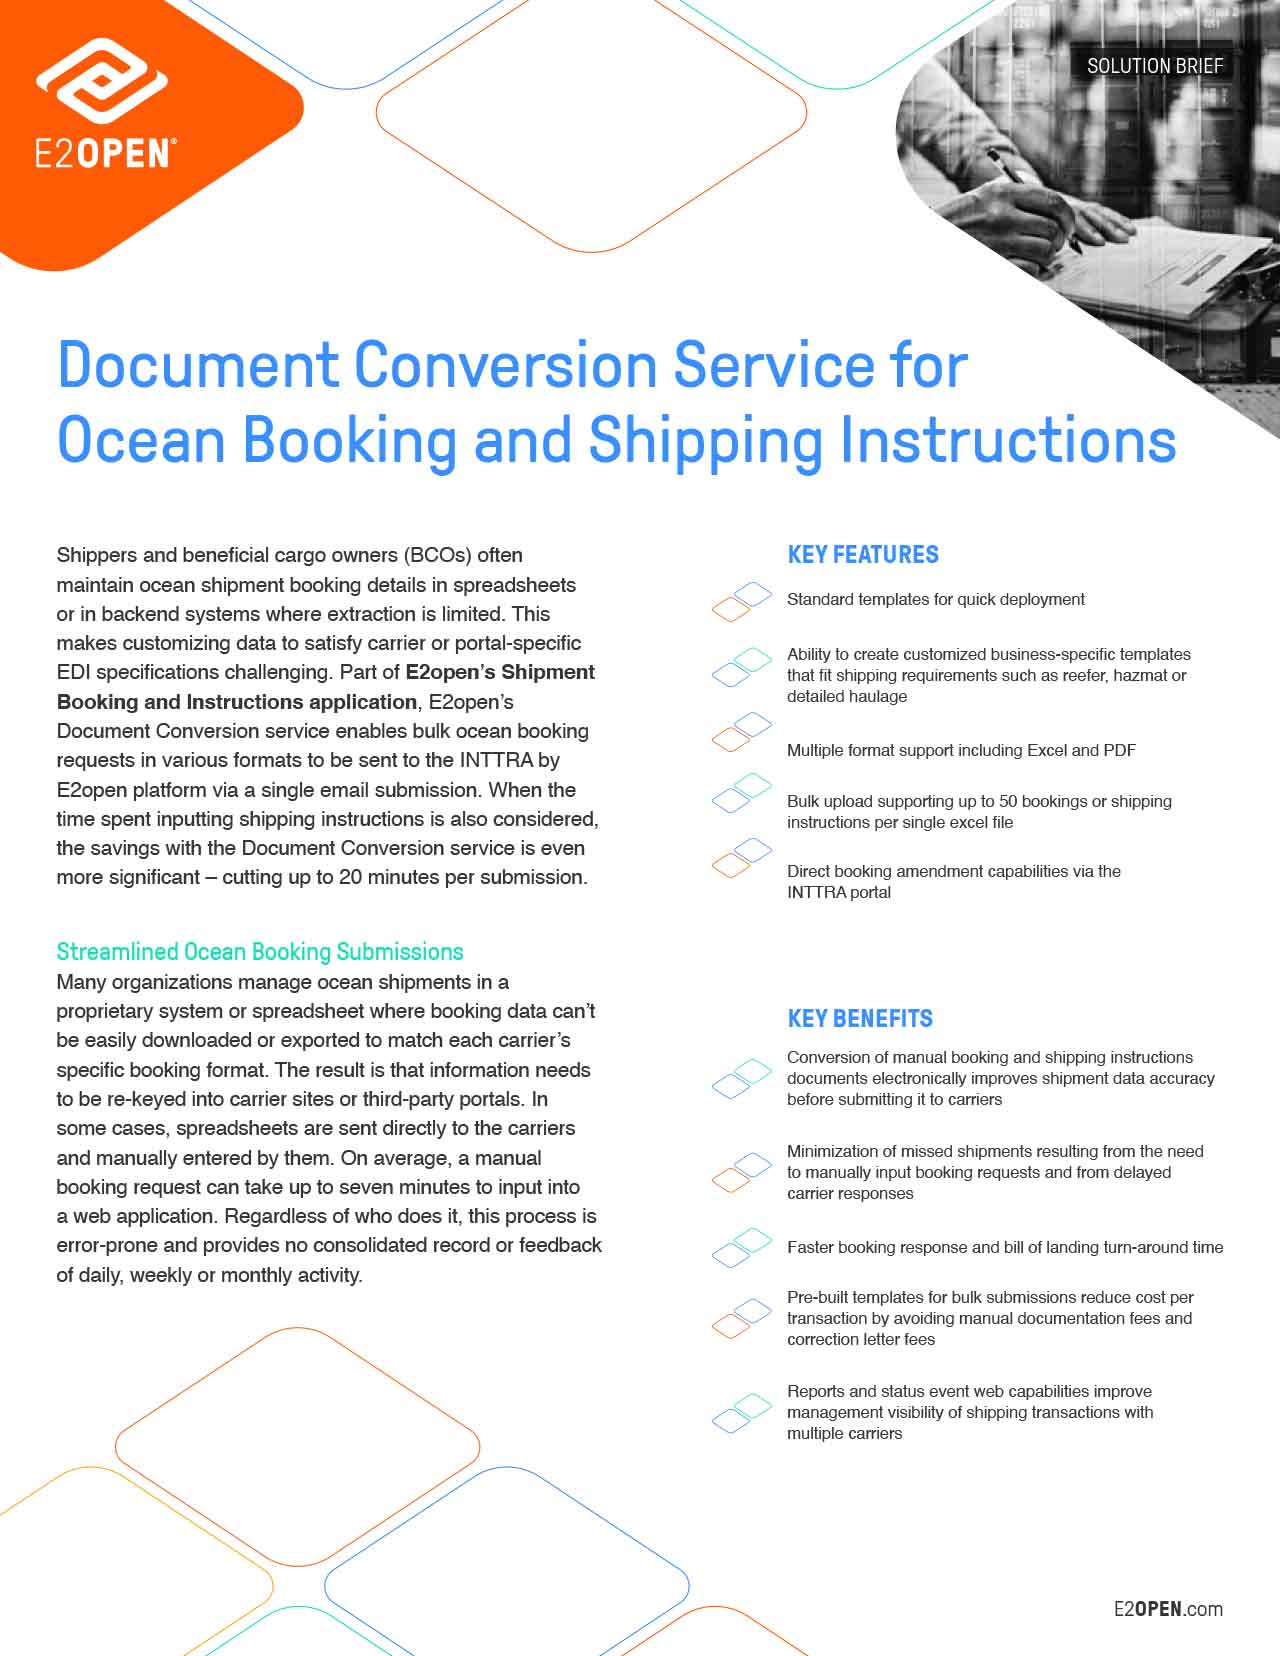 Document Conversion Service for Ocean Booking and Shipping Instructions